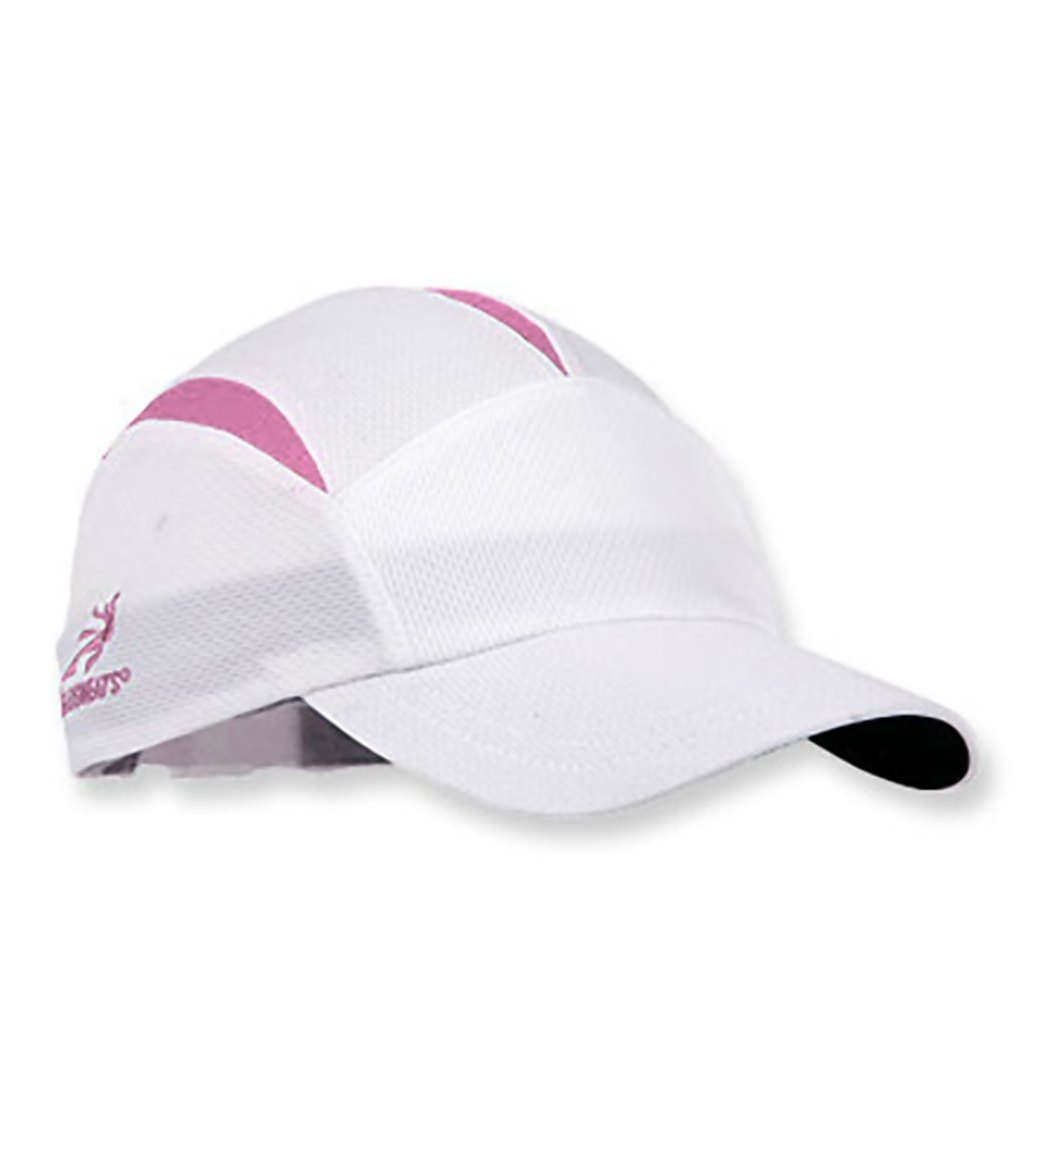 73dad45b134 Headsweats Go Hat at SwimOutlet.com